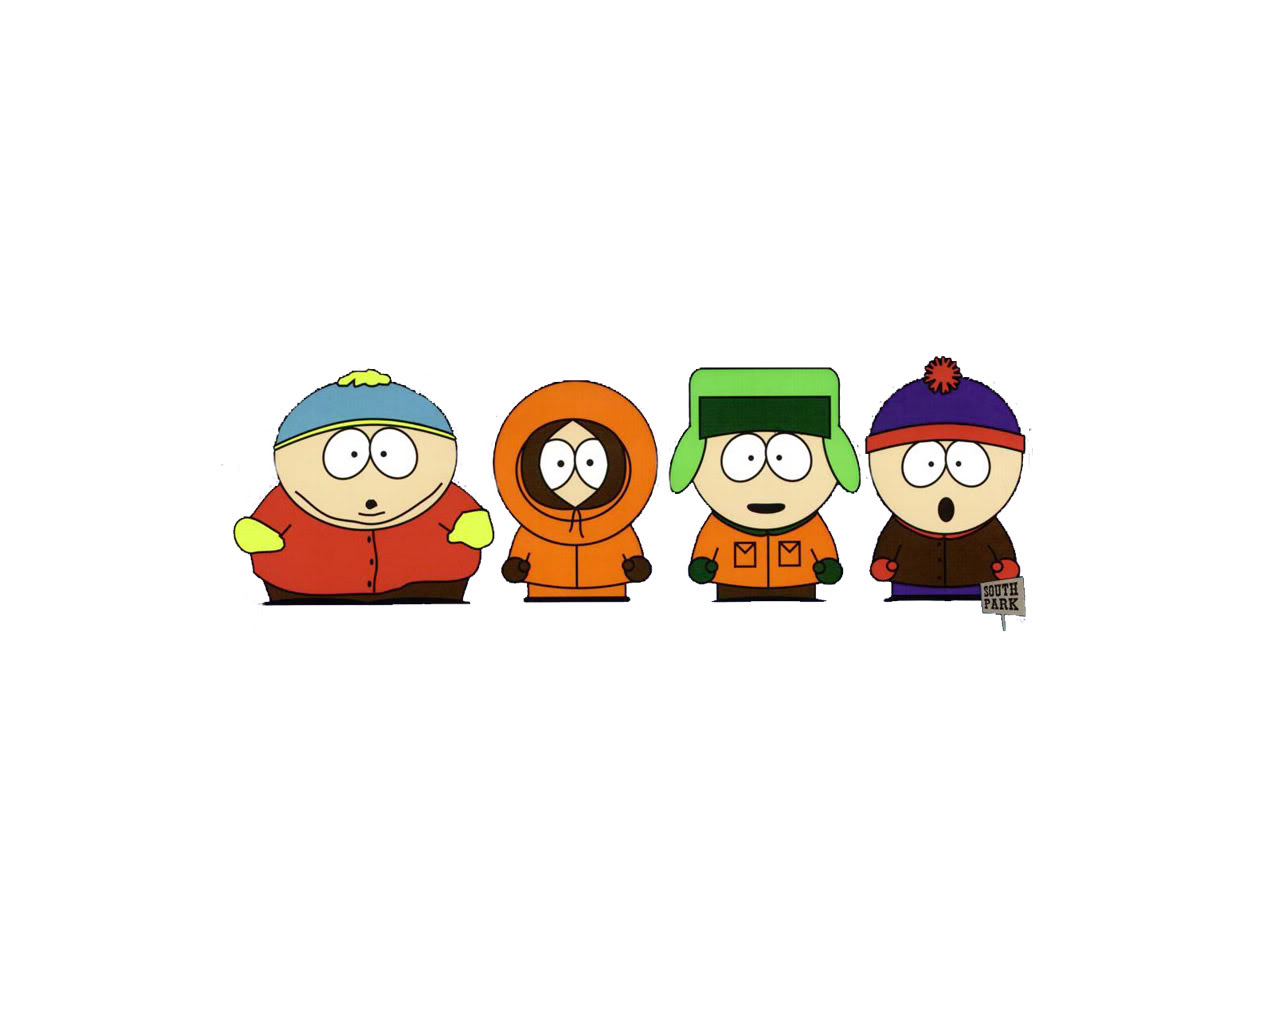 South park achtergronden south park wallpapers 11jpg 1280x1024